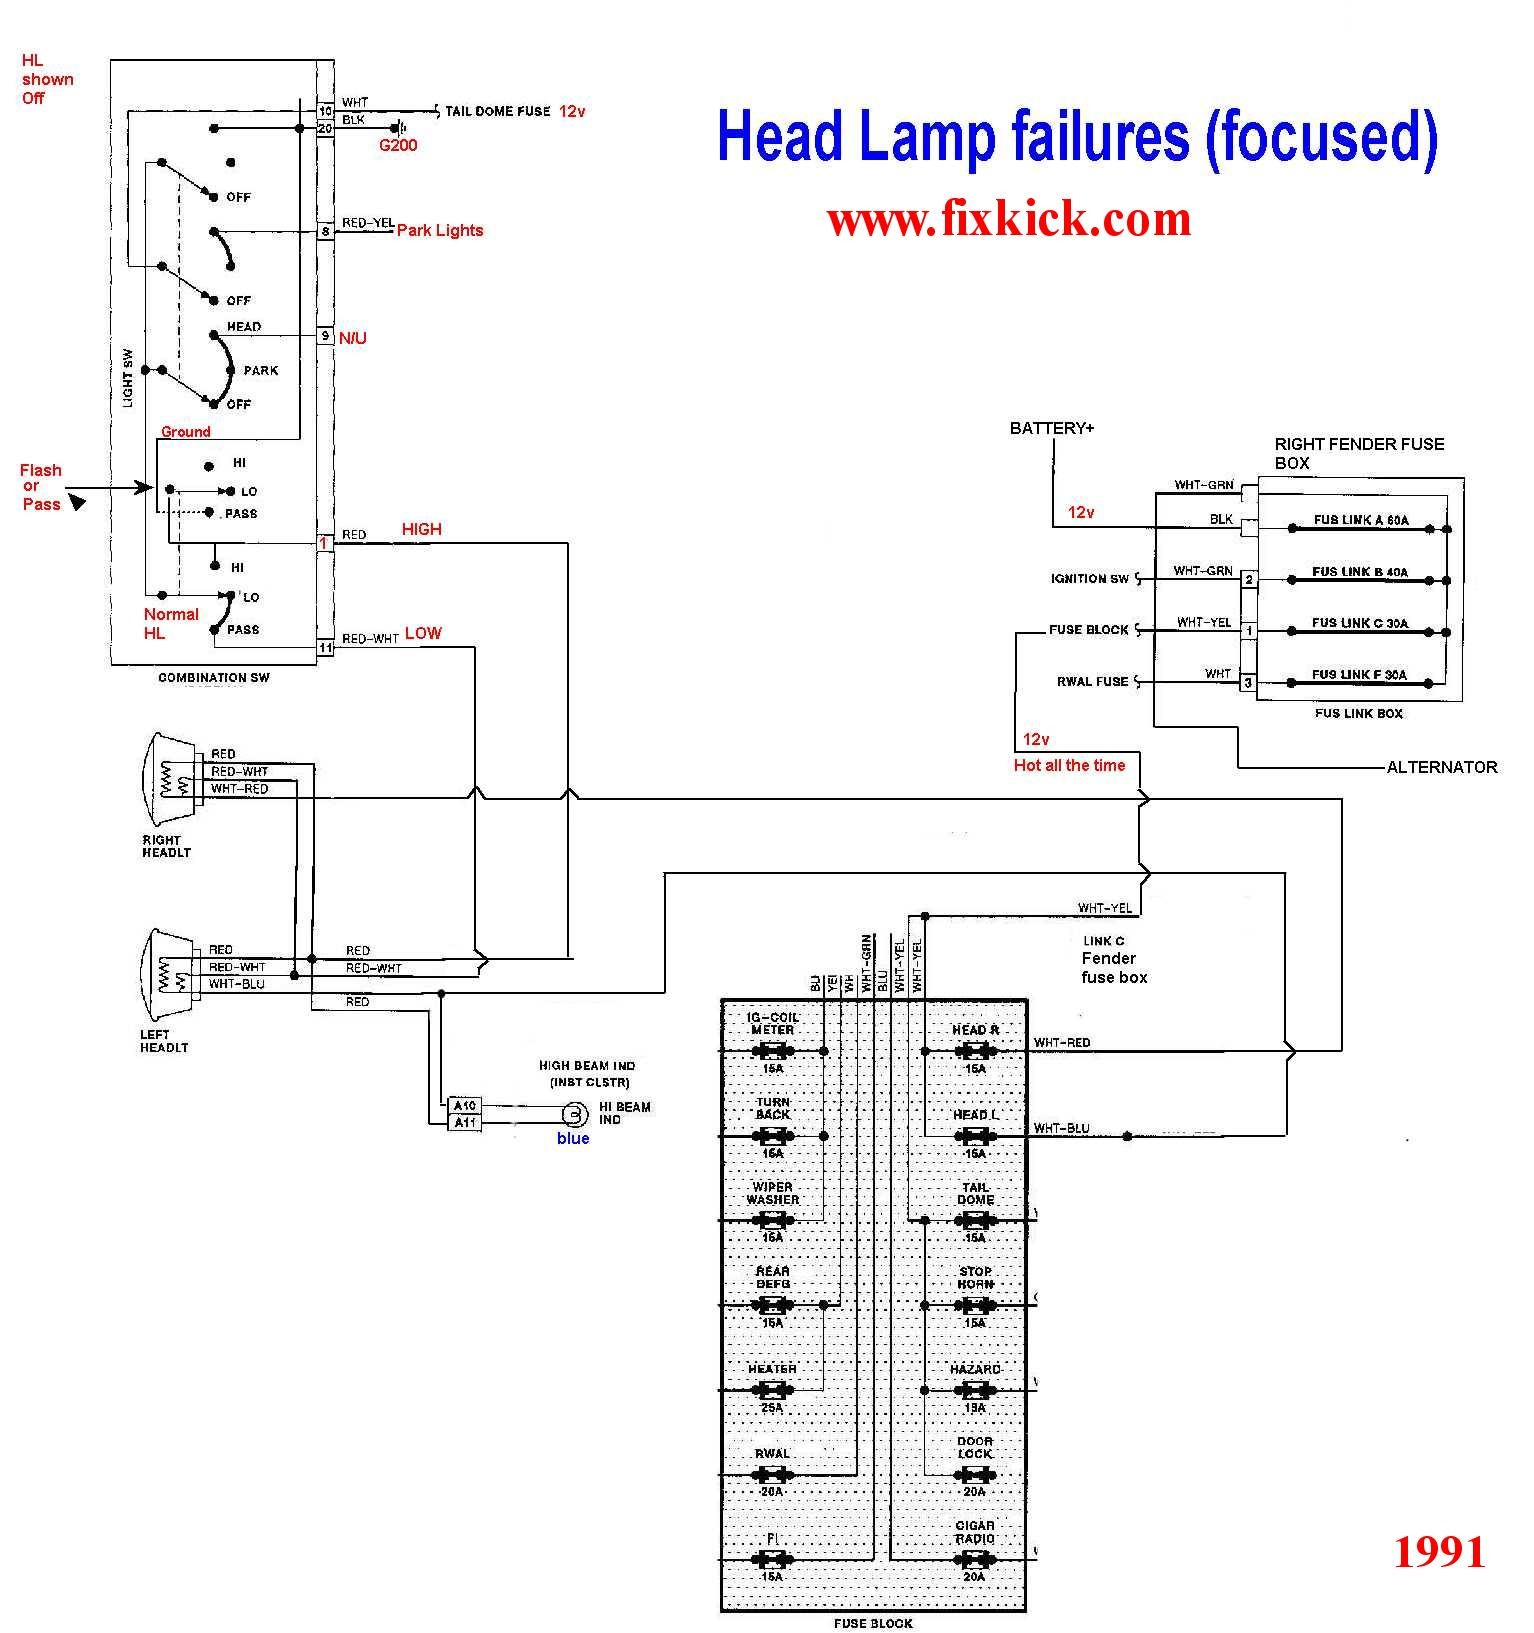 Diagram Of Cooling System for Engine Geo Prizm 1 6 Engine Cooling System Diagram Wiring Diagram Database Of Diagram Of Cooling System for Engine